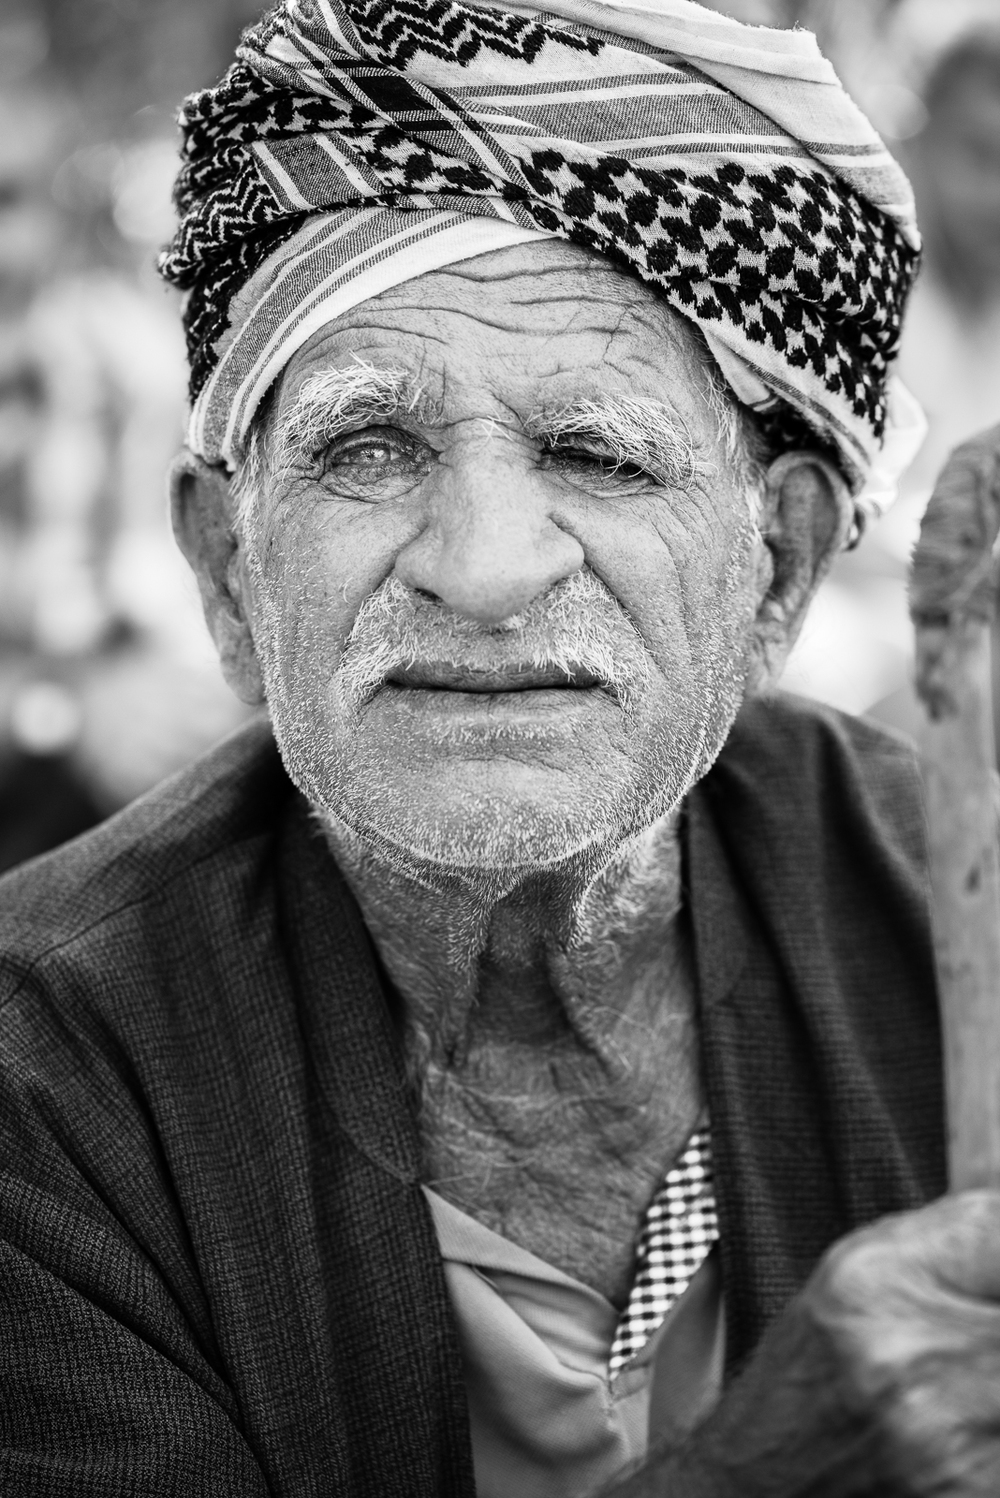 Elder man on the Erbil's streets